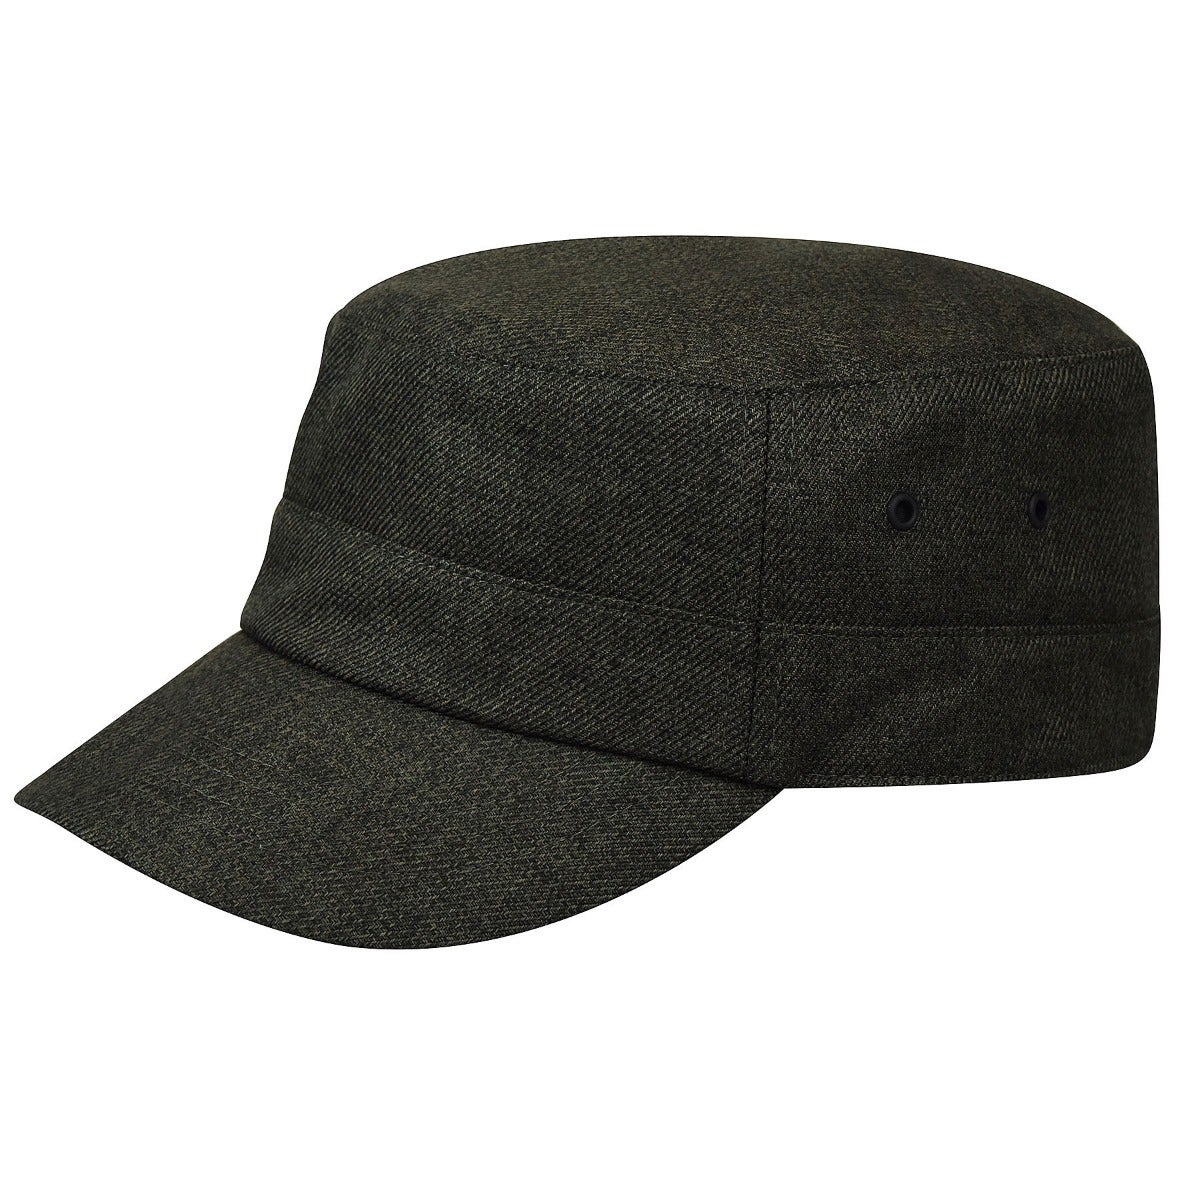 Bailey of Hollywood Sanville Army Cap in Olive